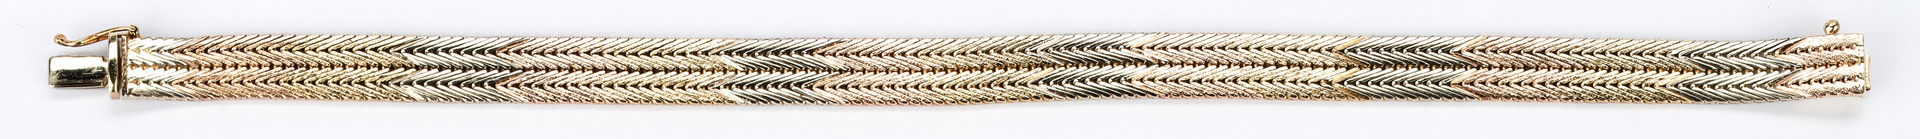 Lot 739: Ladies 14K Tri-Color Double Foxtail Bracelet